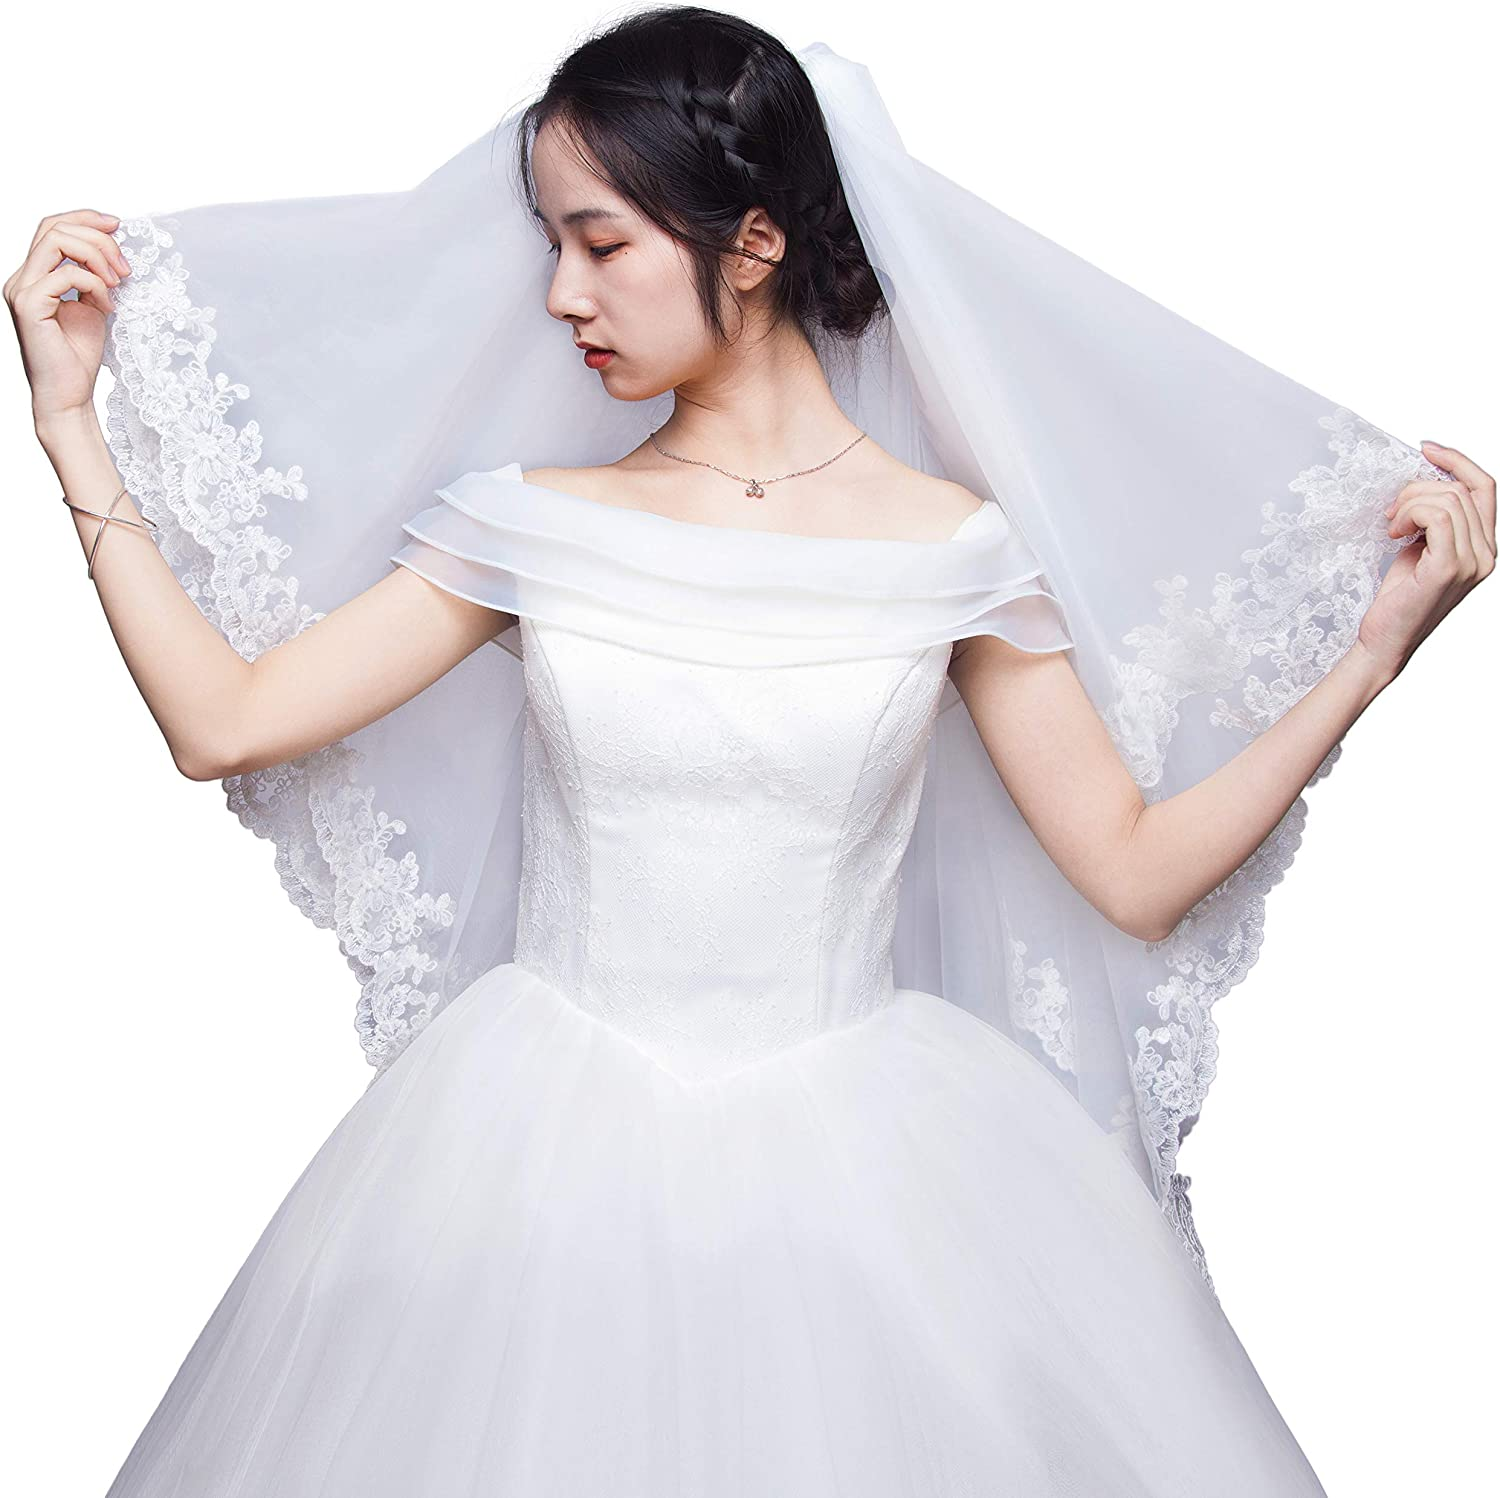 TOIHSUAN Women's 2 Tier Cathedral Length Lace Bridal Veil for Wedding+Comb